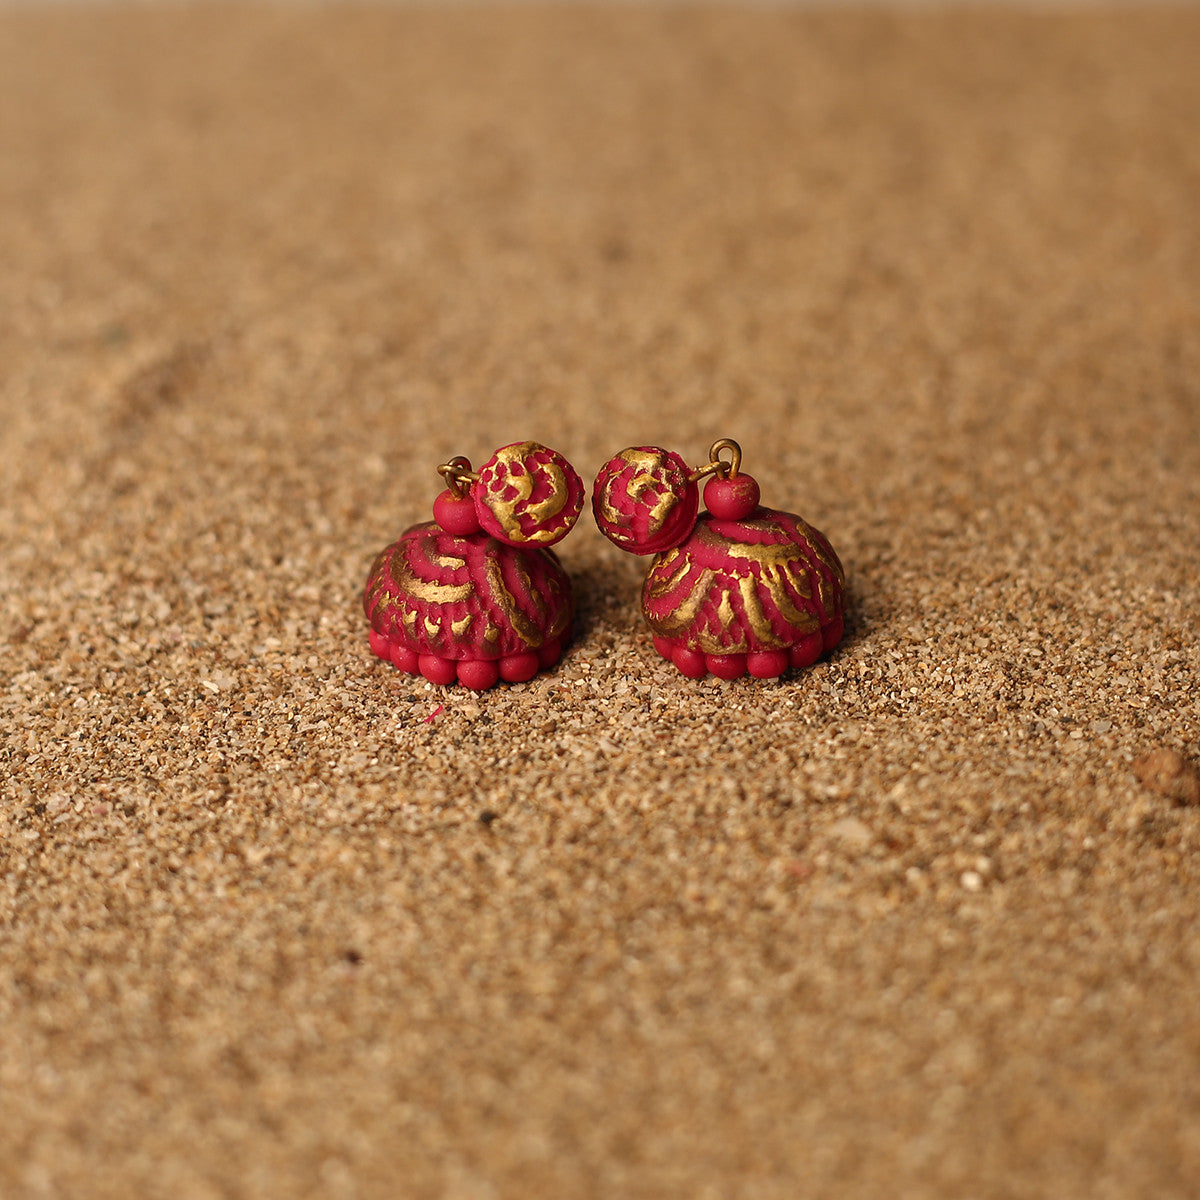 Pink and Golden Coloured Handcrafted Polymer Clay Earrings